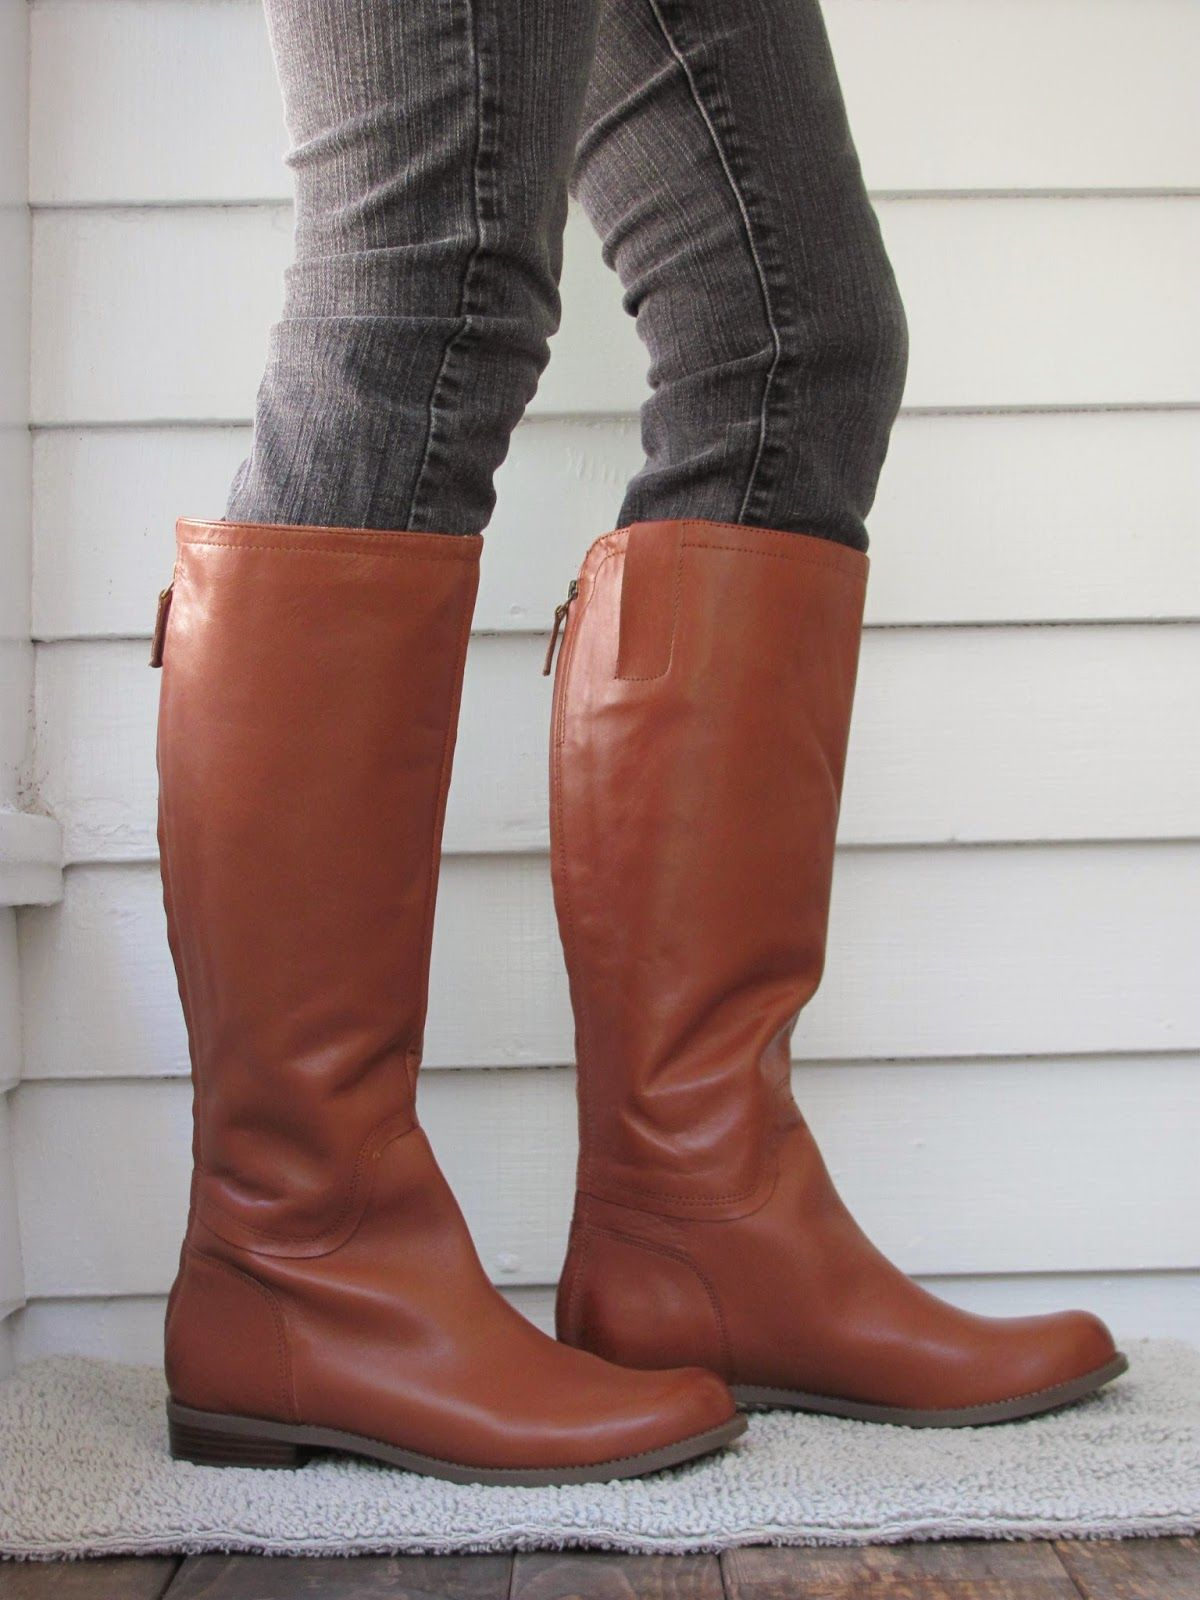 62c4bf86978 Howdy Slim! Riding Boots for Thin Calves: Nine West Contigua | Boots ...